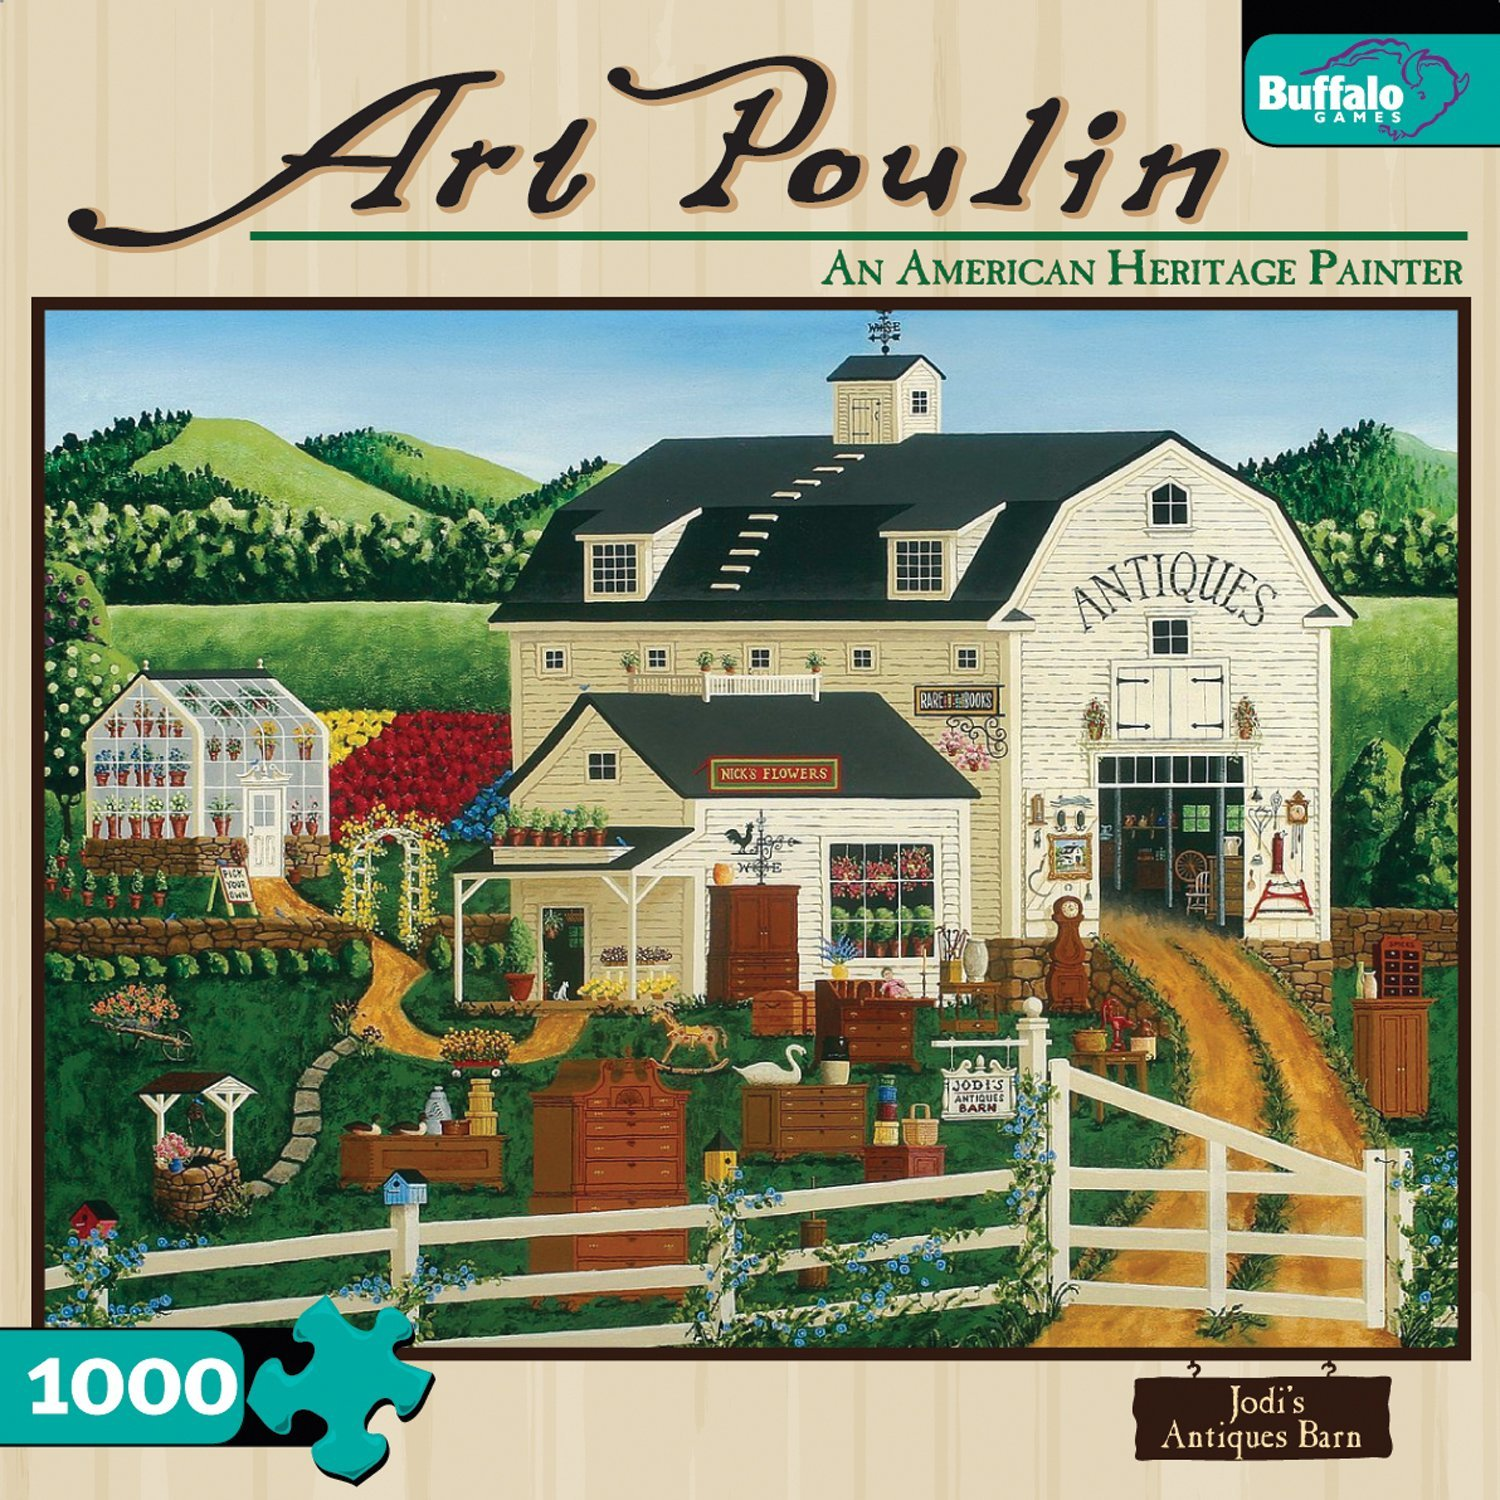 Art Poulin Painting 1000 Piece Jigsaw Puzzle Jodi's Antiques Barn